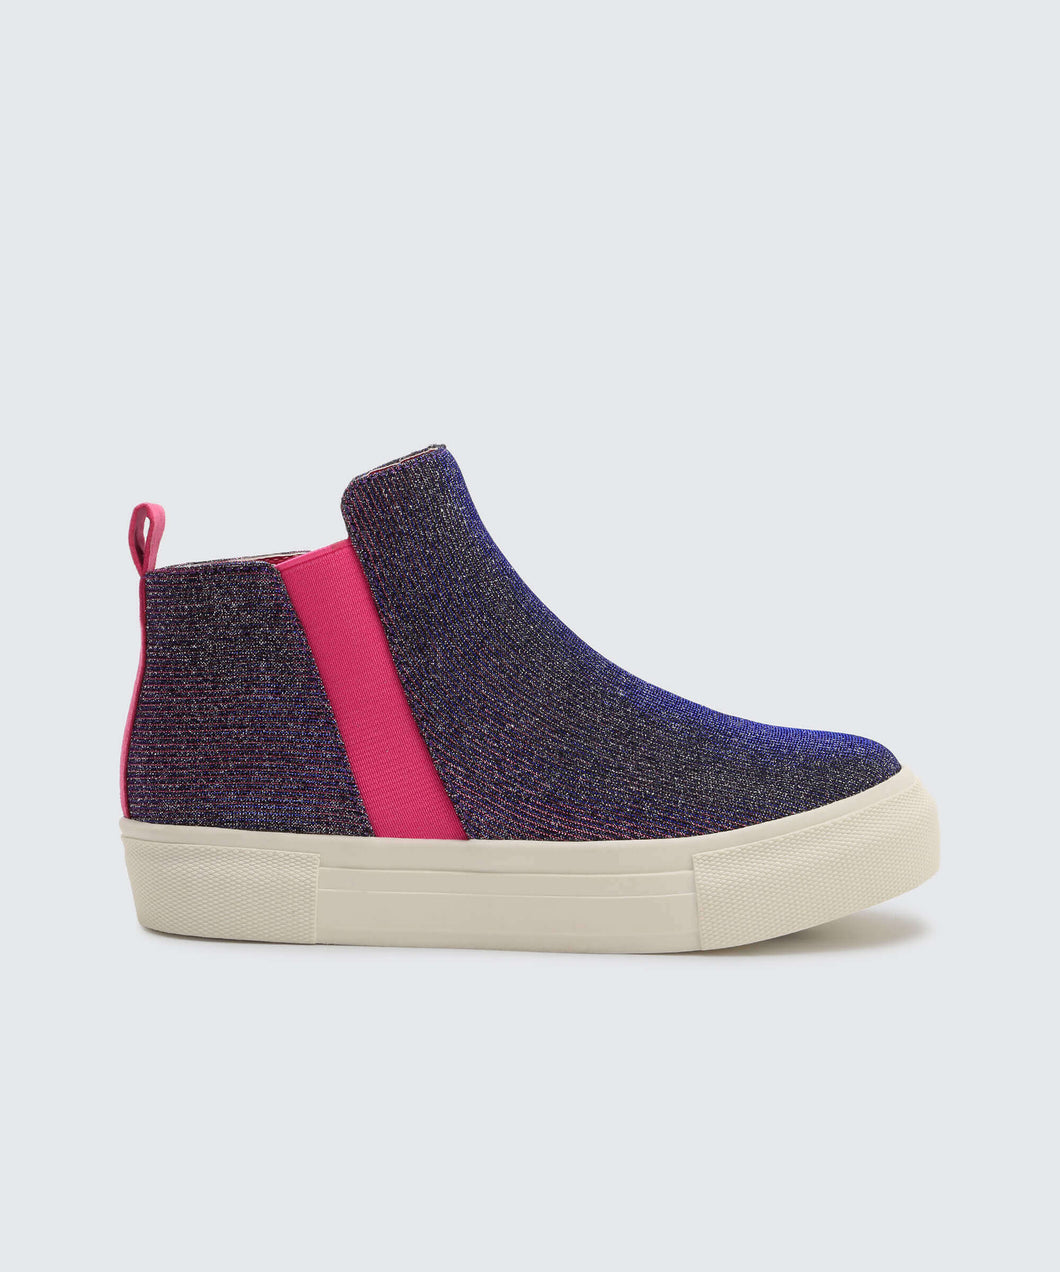 CRYSTA SNEAKERS IN FUCHSIA -   Dolce Vita